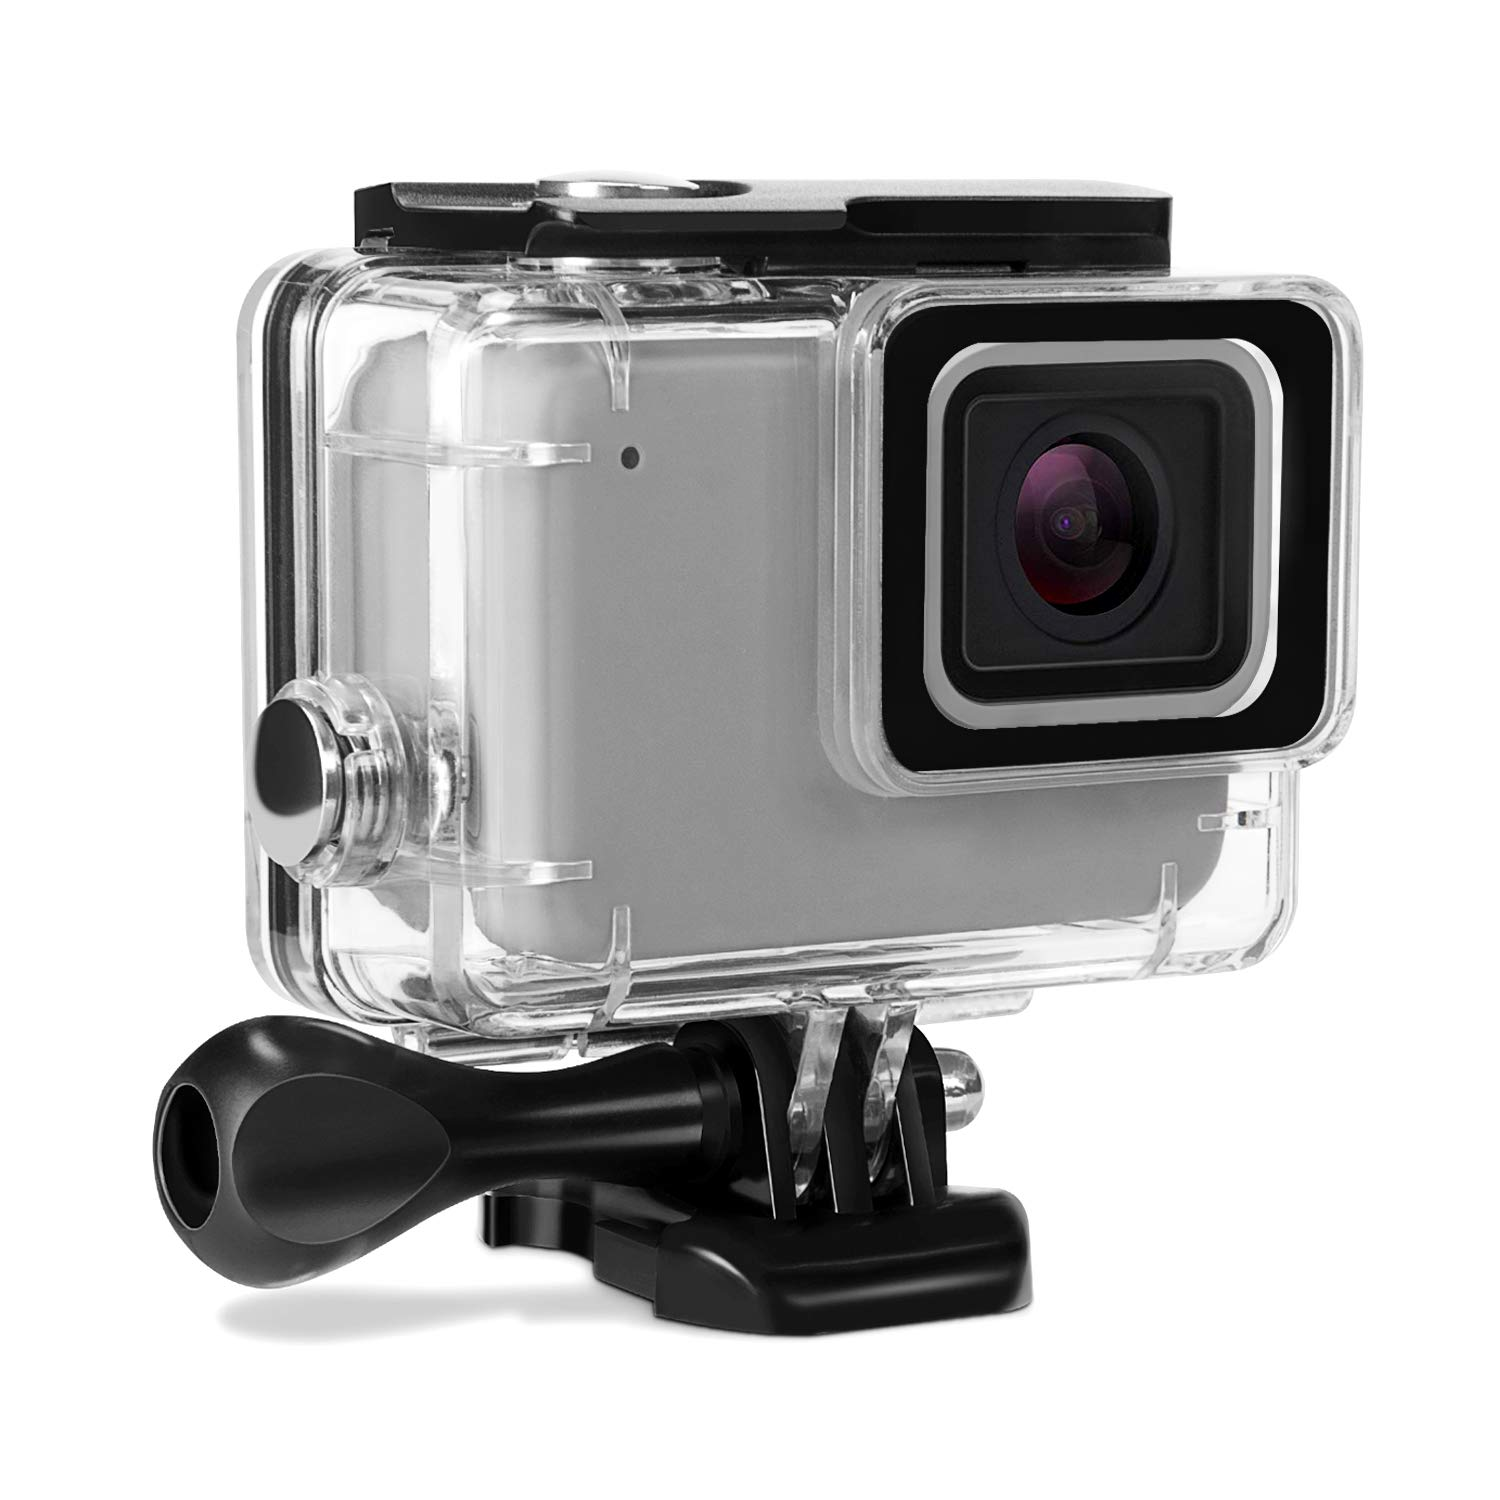 Kupton Waterproof Case for GoPro Hero 7 Silver/White Housing Case Accessaries Diving Protective Housing Shell 45 Meter for Go Pro Hero7 Silver White Action Camera with Bracket Accessories by Kupton